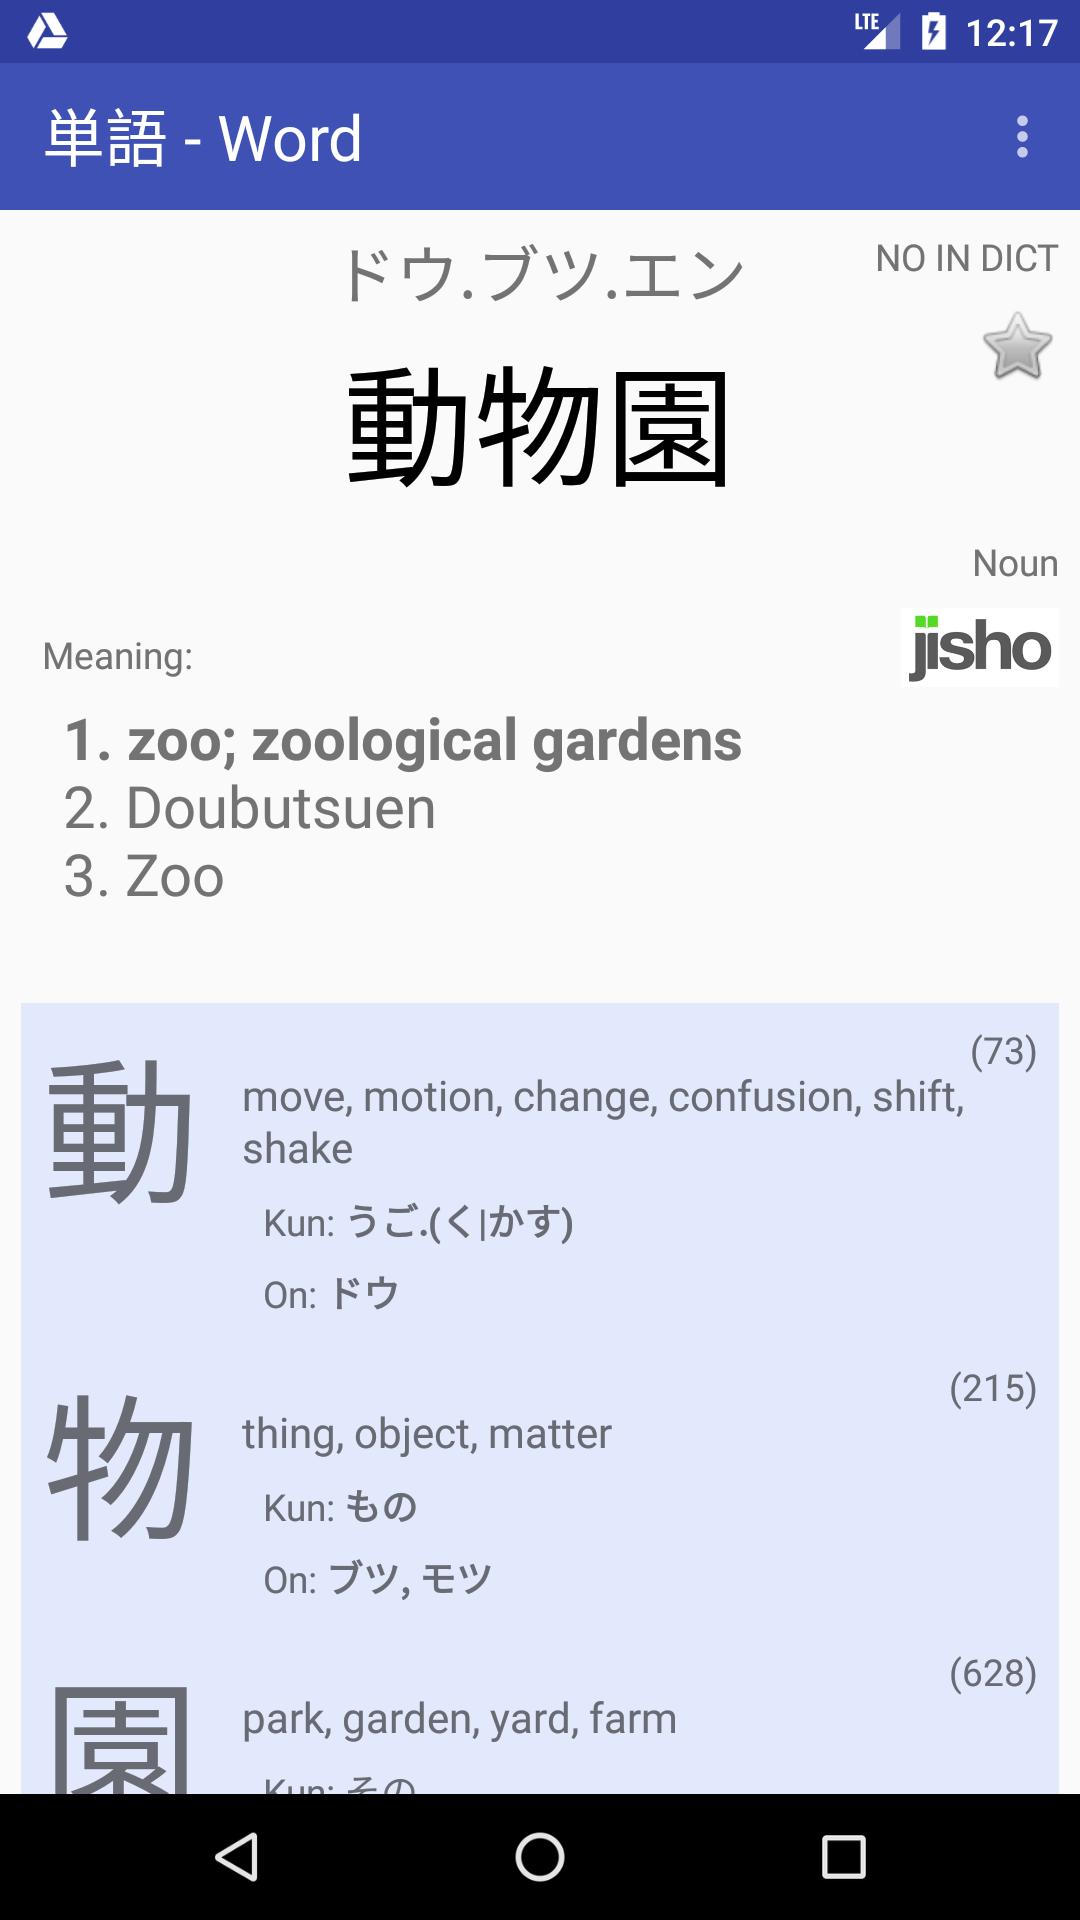 Tango - Japanese Vocabulary Trainer for Android - APK Download